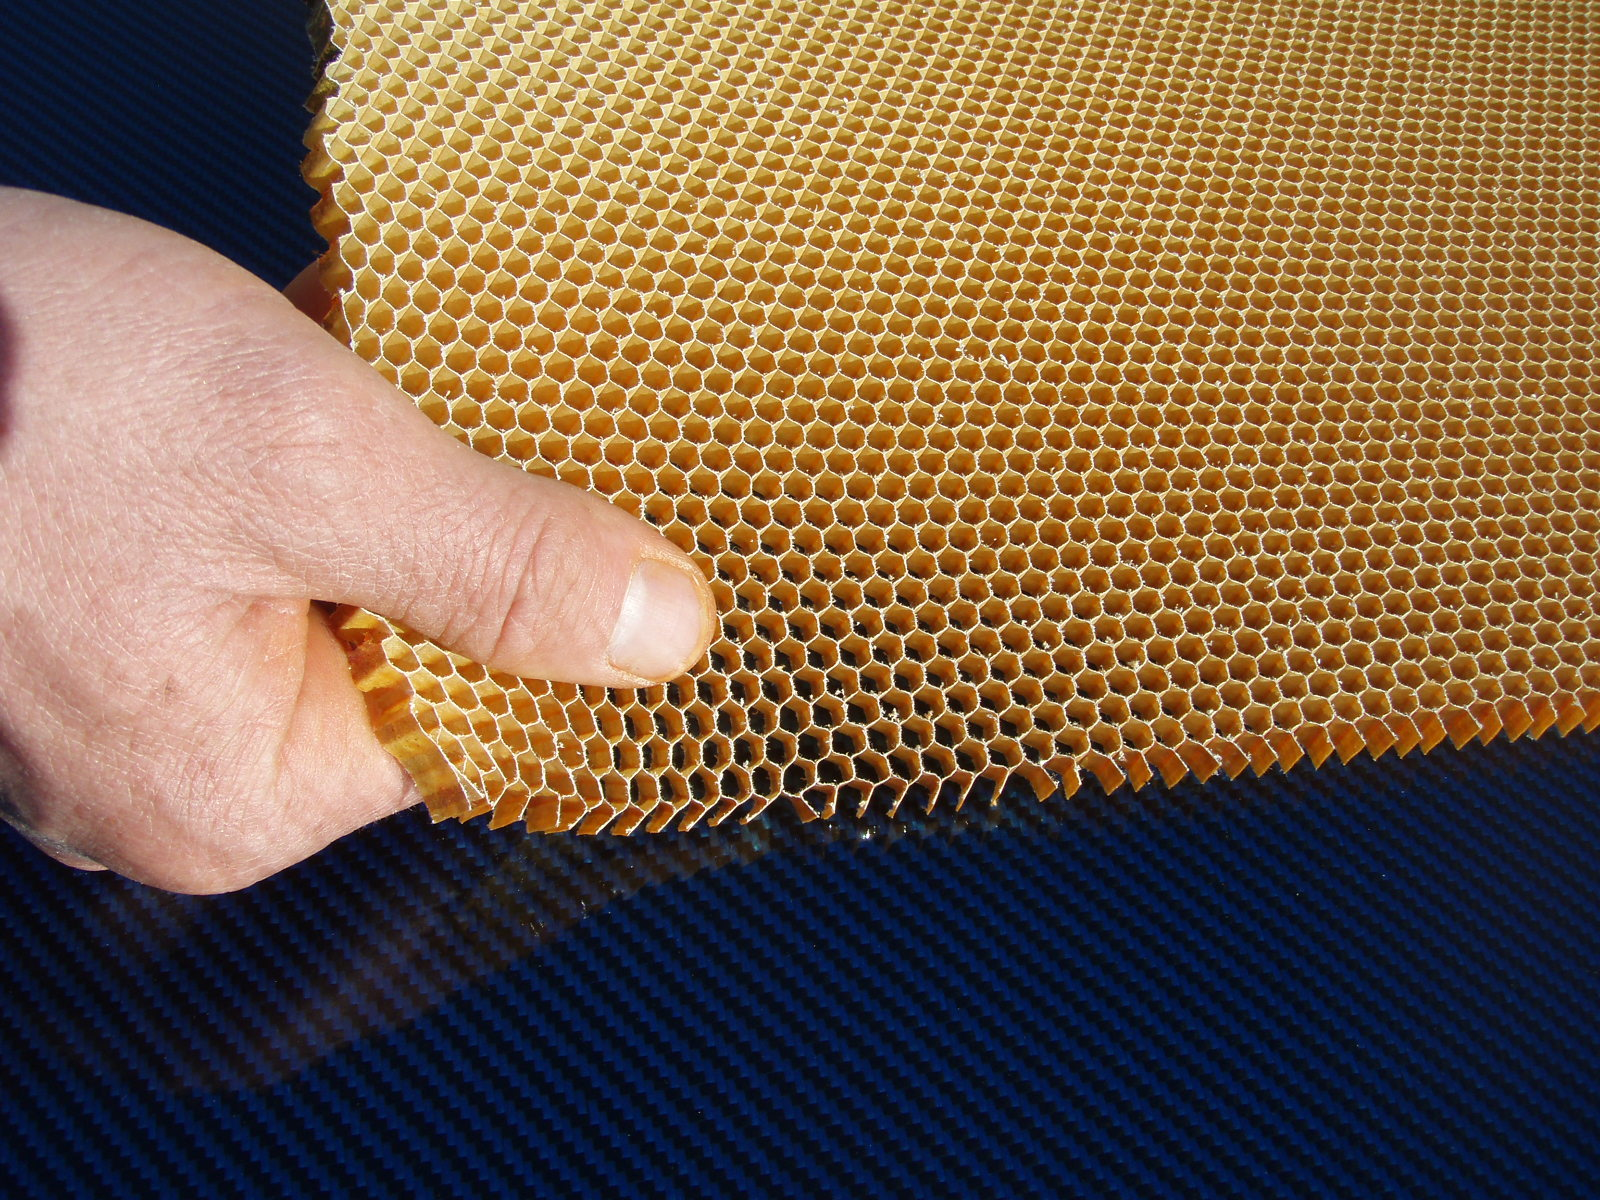 research papers kevlar aramid fiber Elevated temperature treatment of aramid fibers to improve the para-type aramid fibers (kevlar this research fiber samples were immersed in.